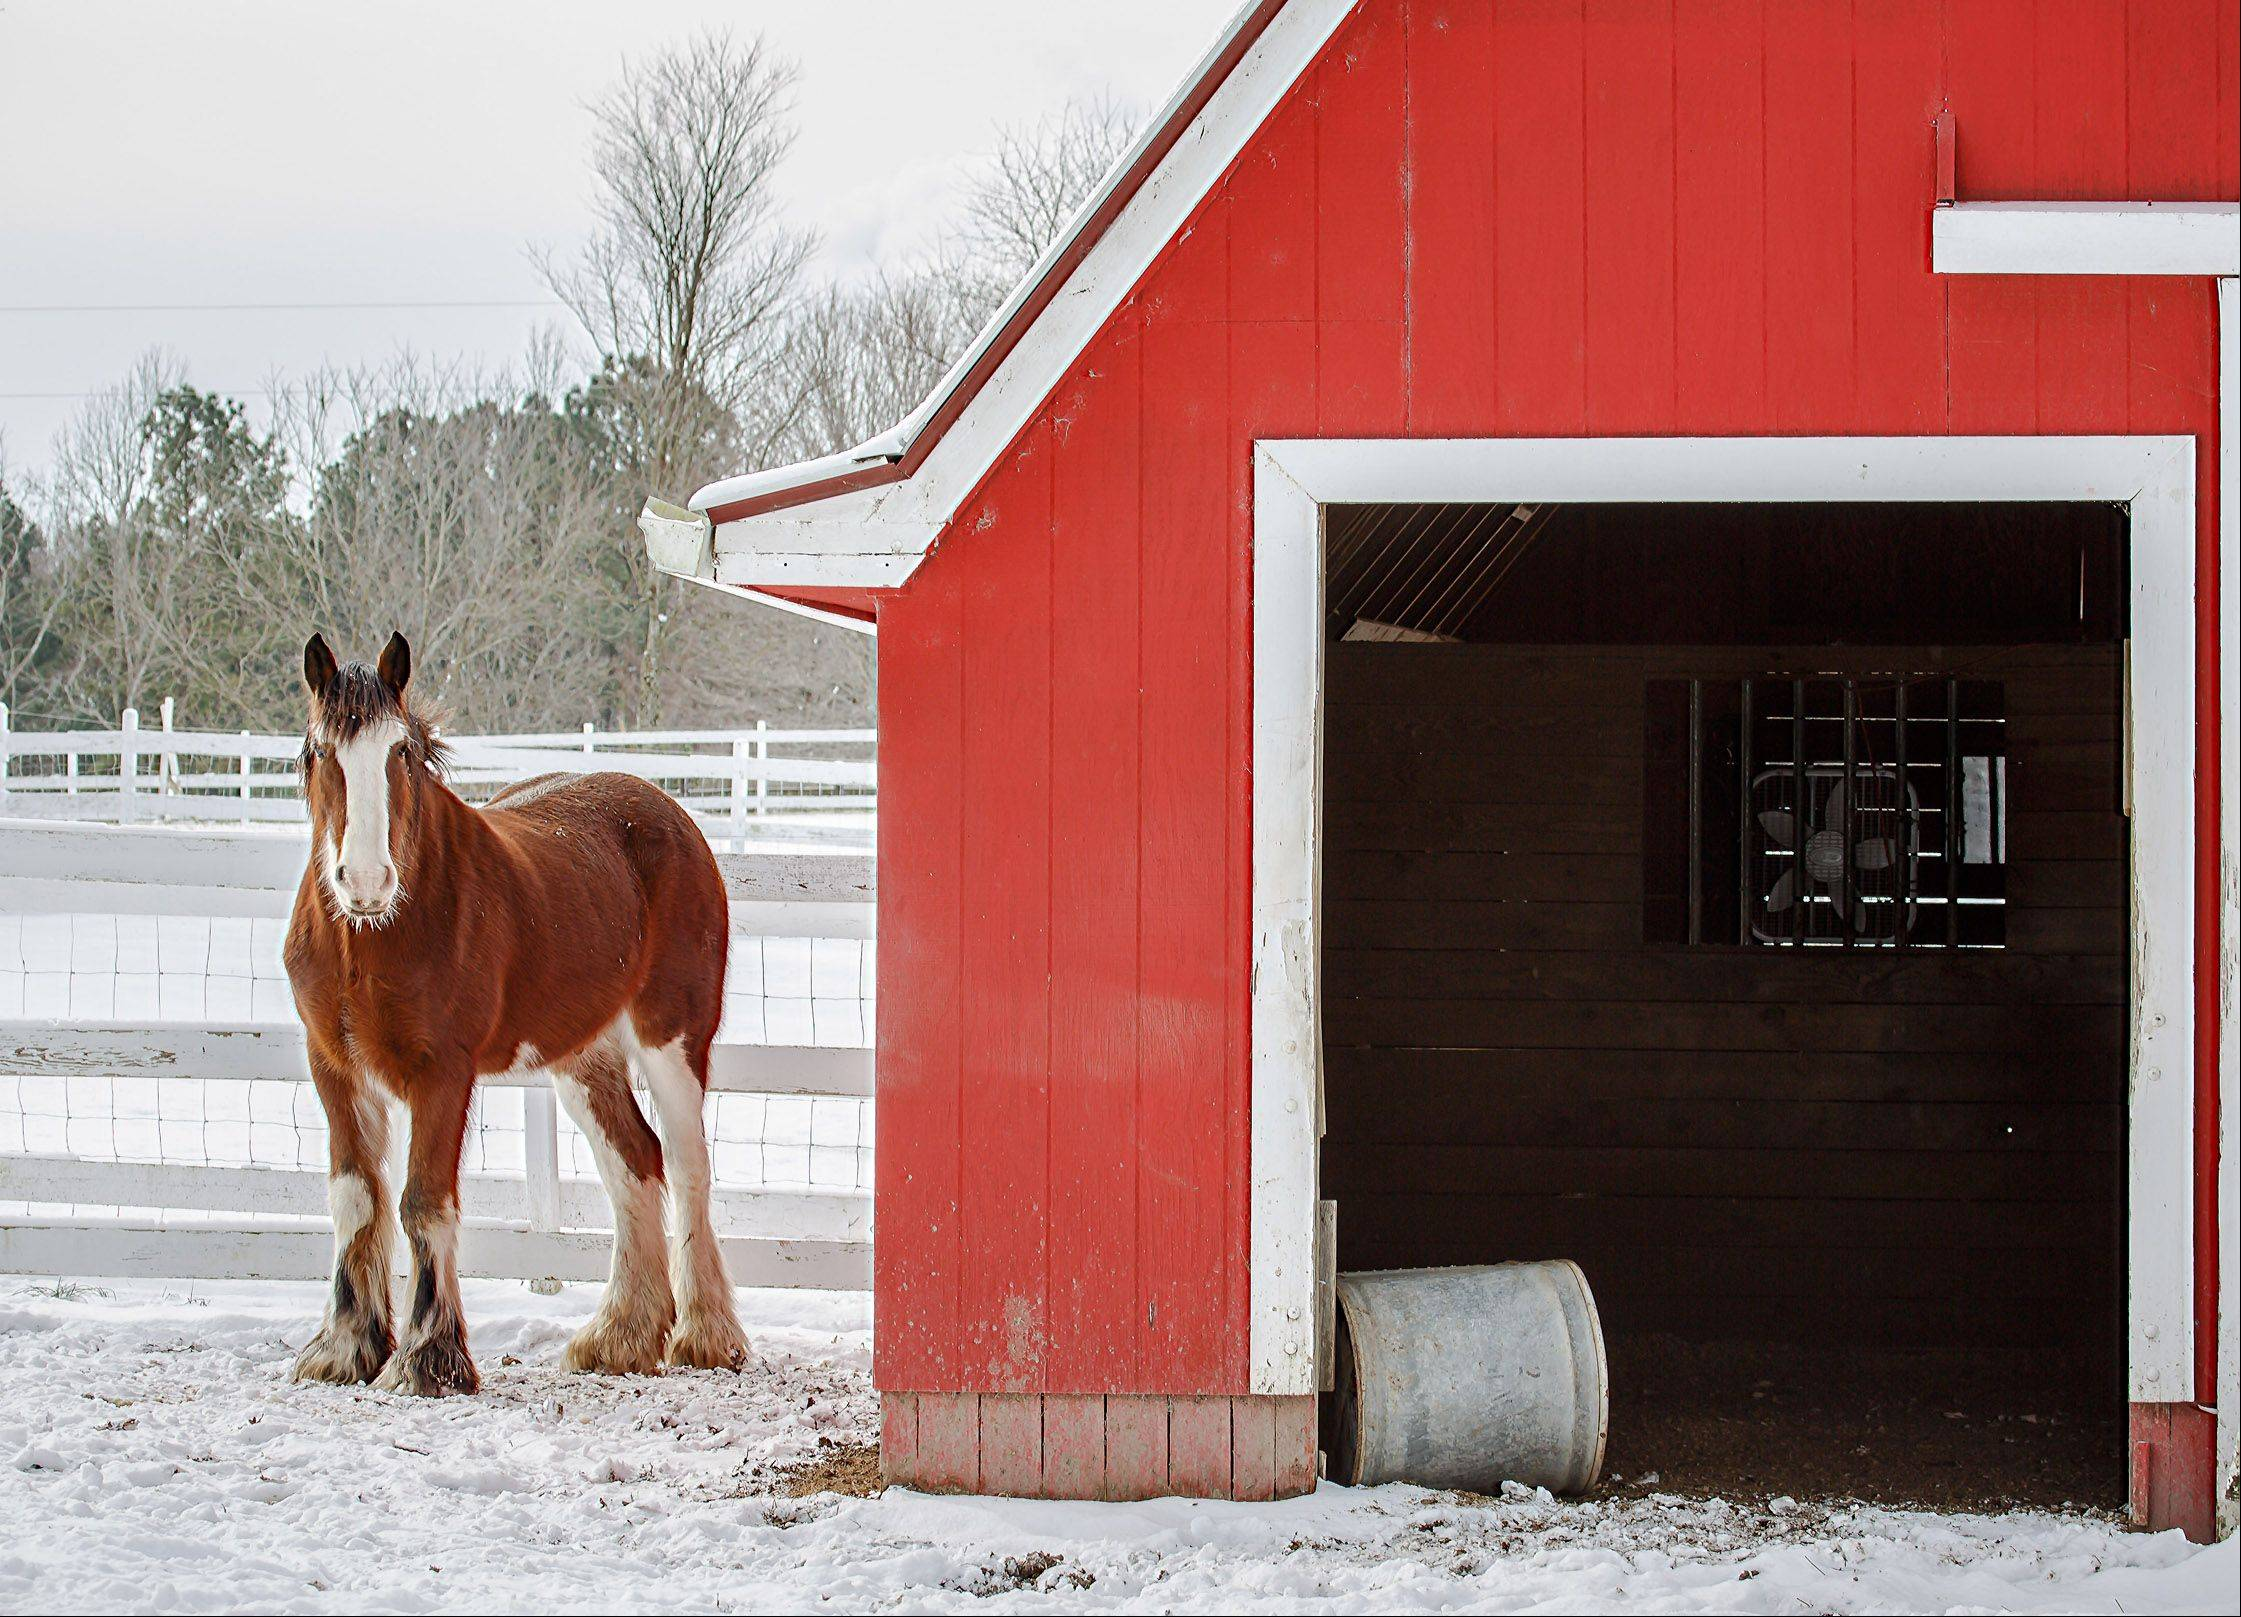 A horse stands in the freshly fallen snow, next to his red barn in rural Apex, North Carolina on January 29th.